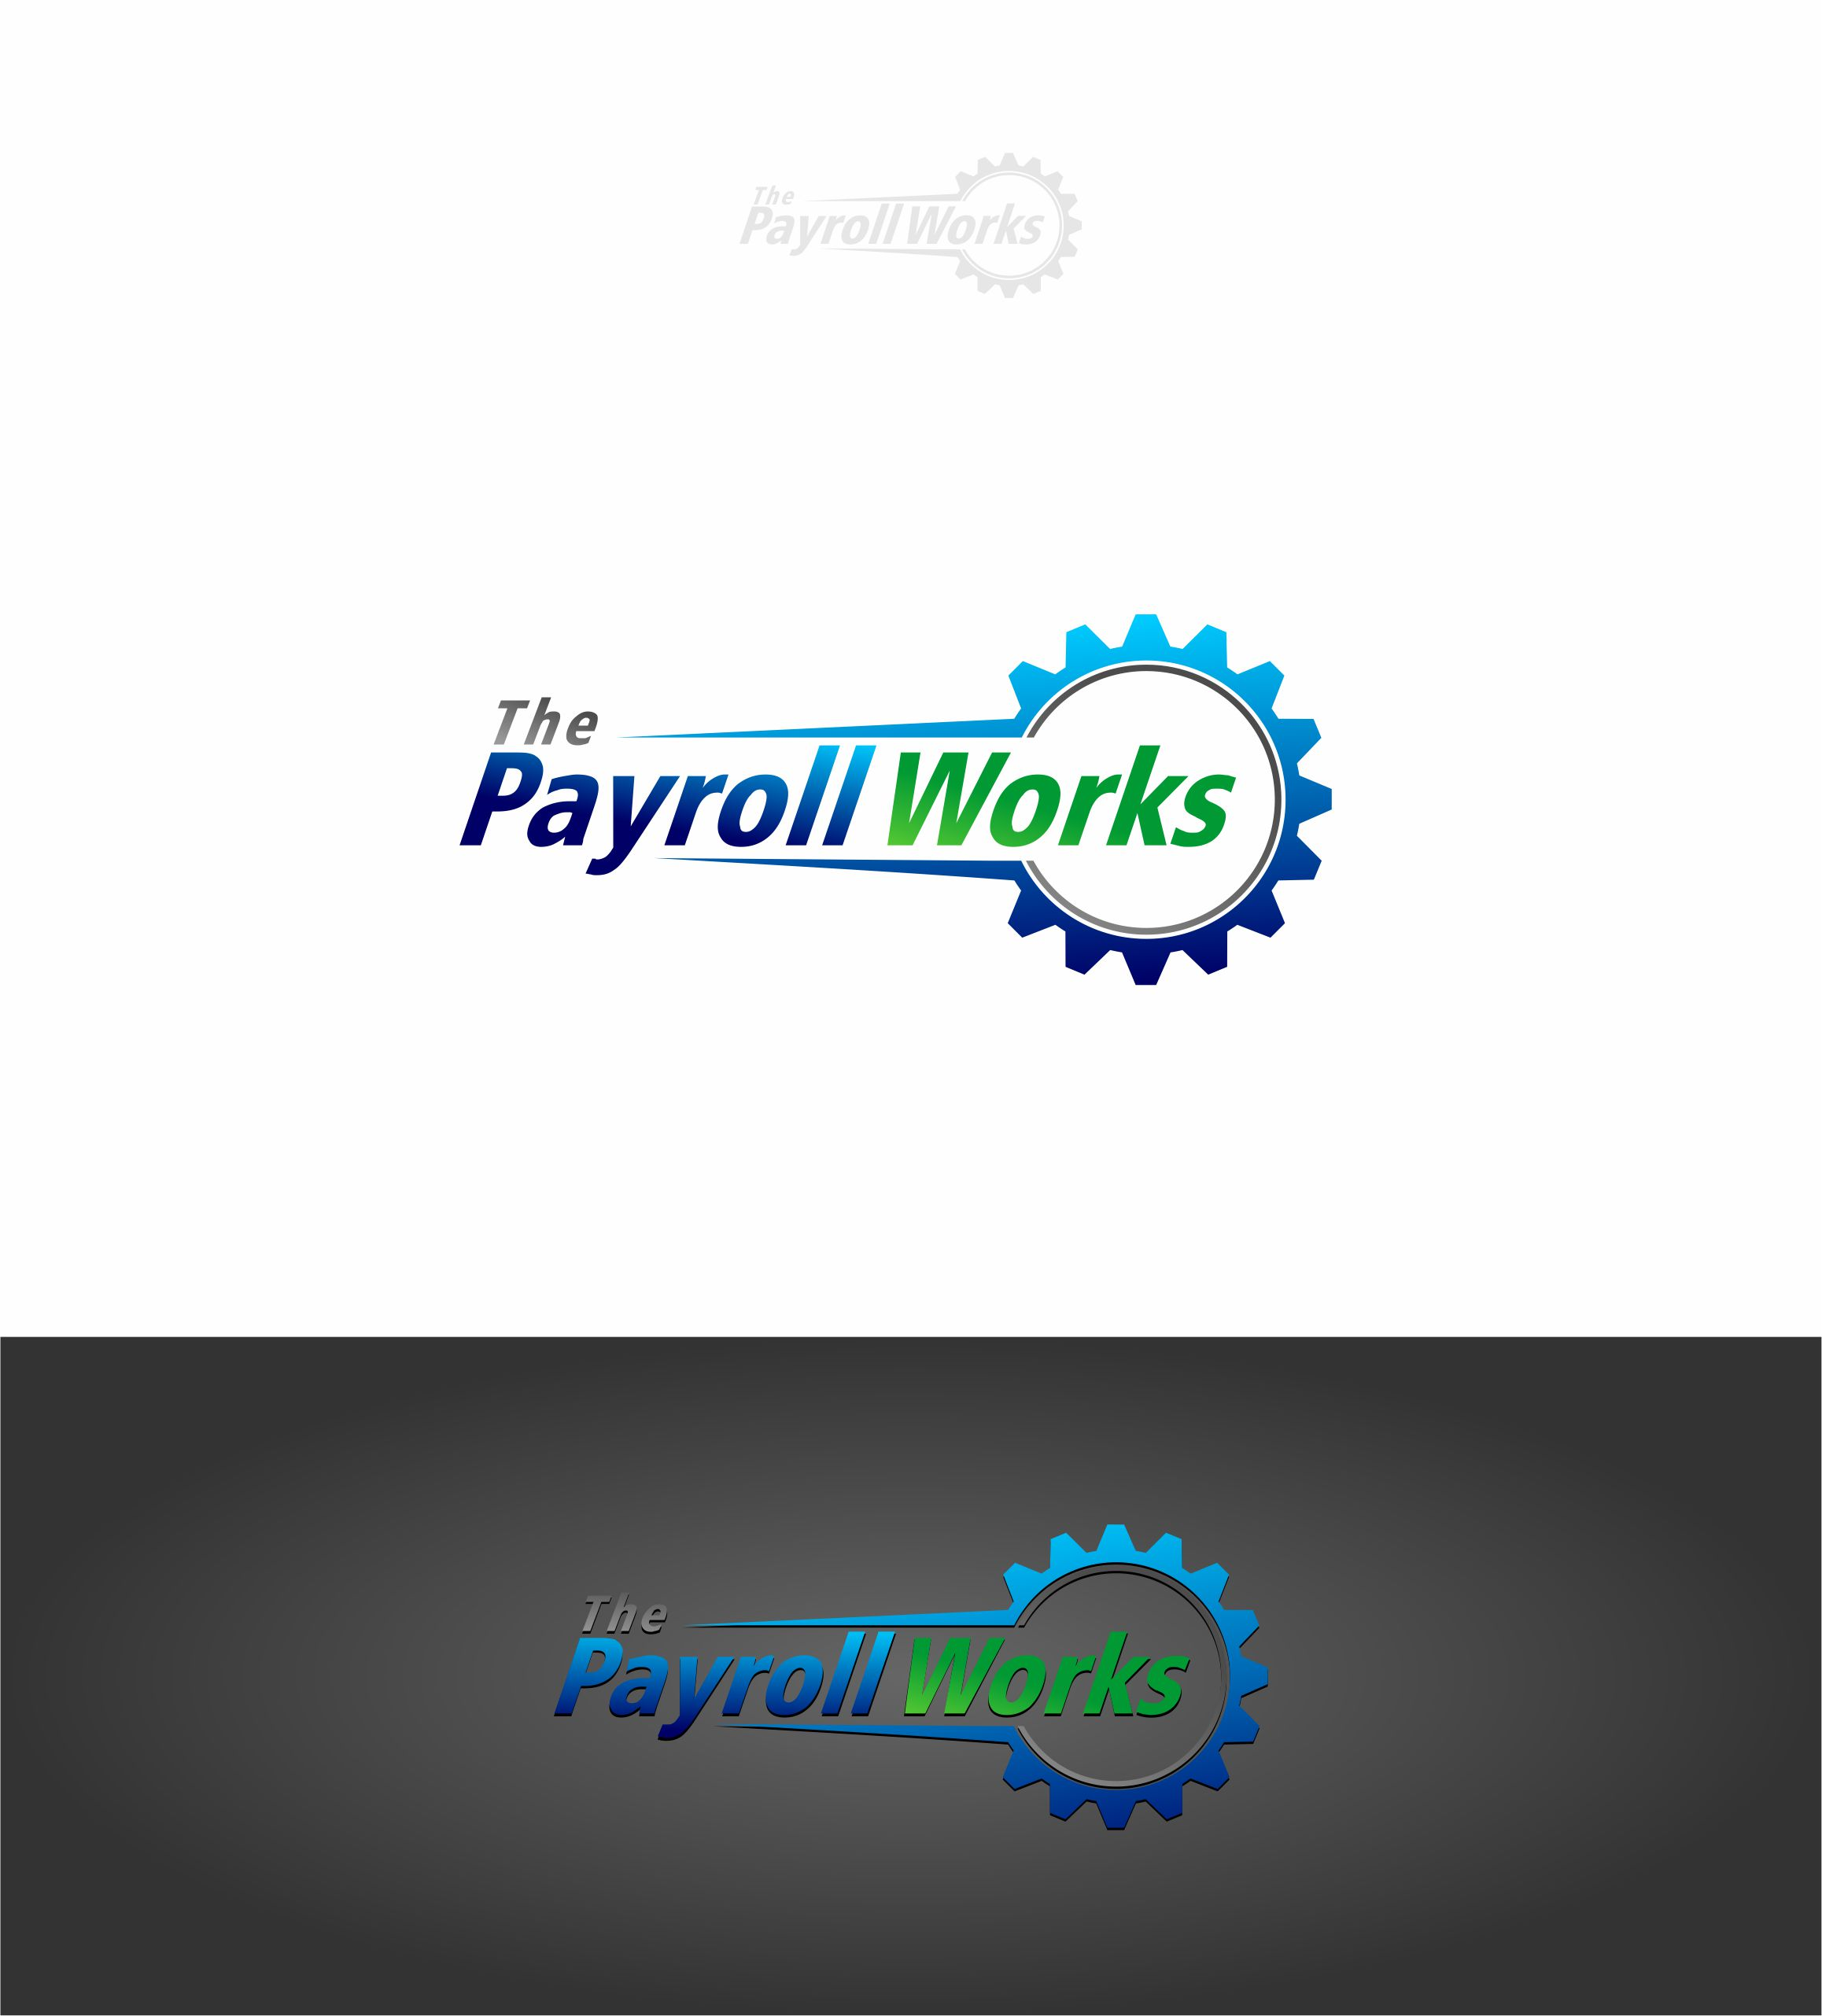 Logo Design by Raymond Garcia - Entry No. 36 in the Logo Design Contest Captivating Logo Design for The Payroll Works.